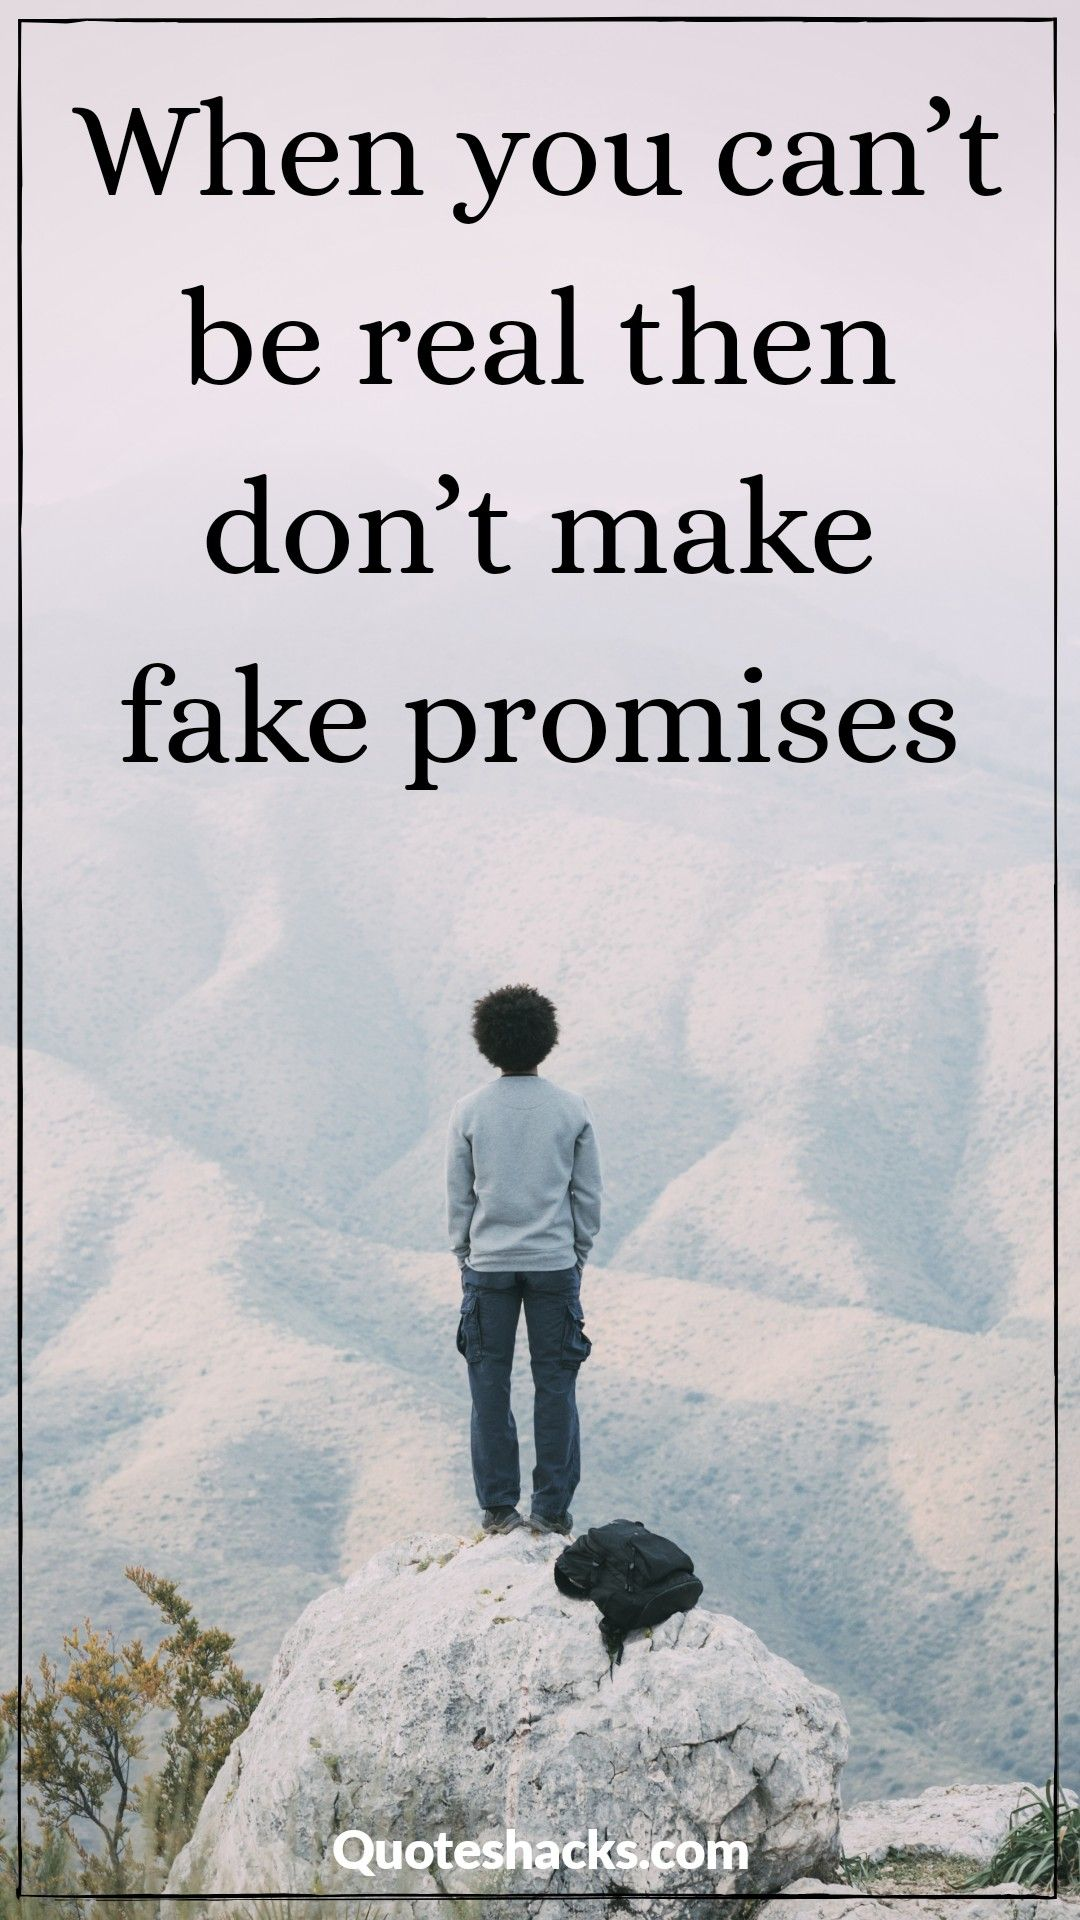 10+ Fake Friends And People Quotes  Fake people quotes, Quotes